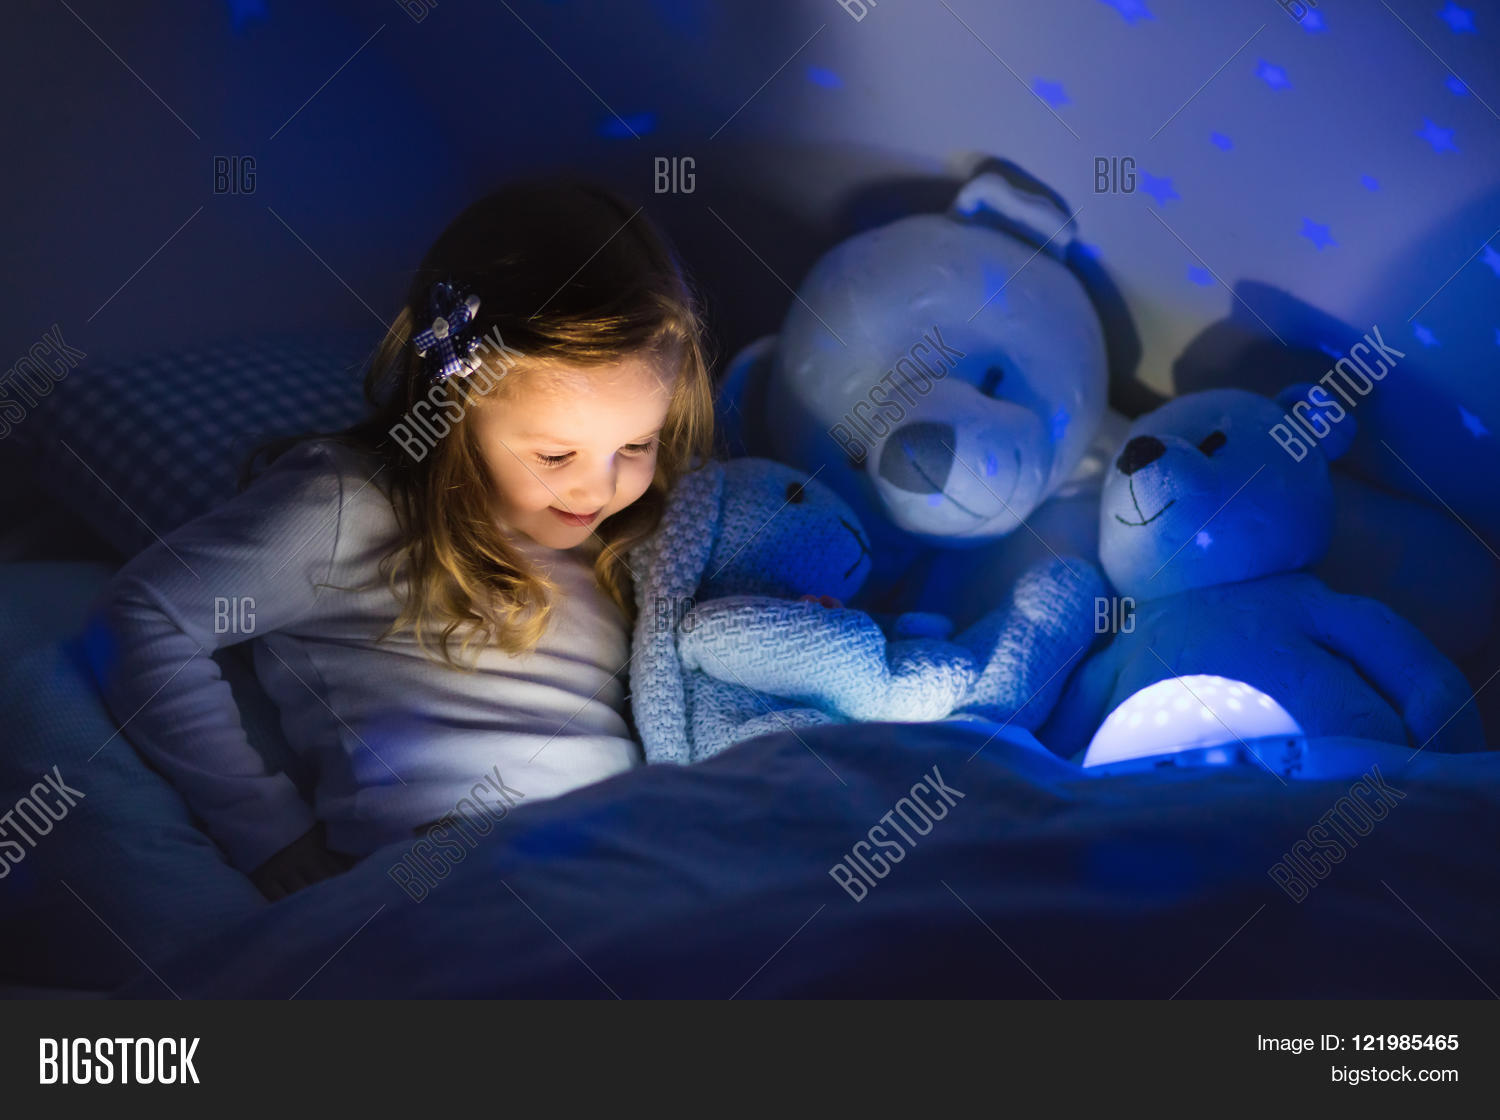 Kids Bedroom Night Light little girl reading a book in bed. dark bedroom with night light